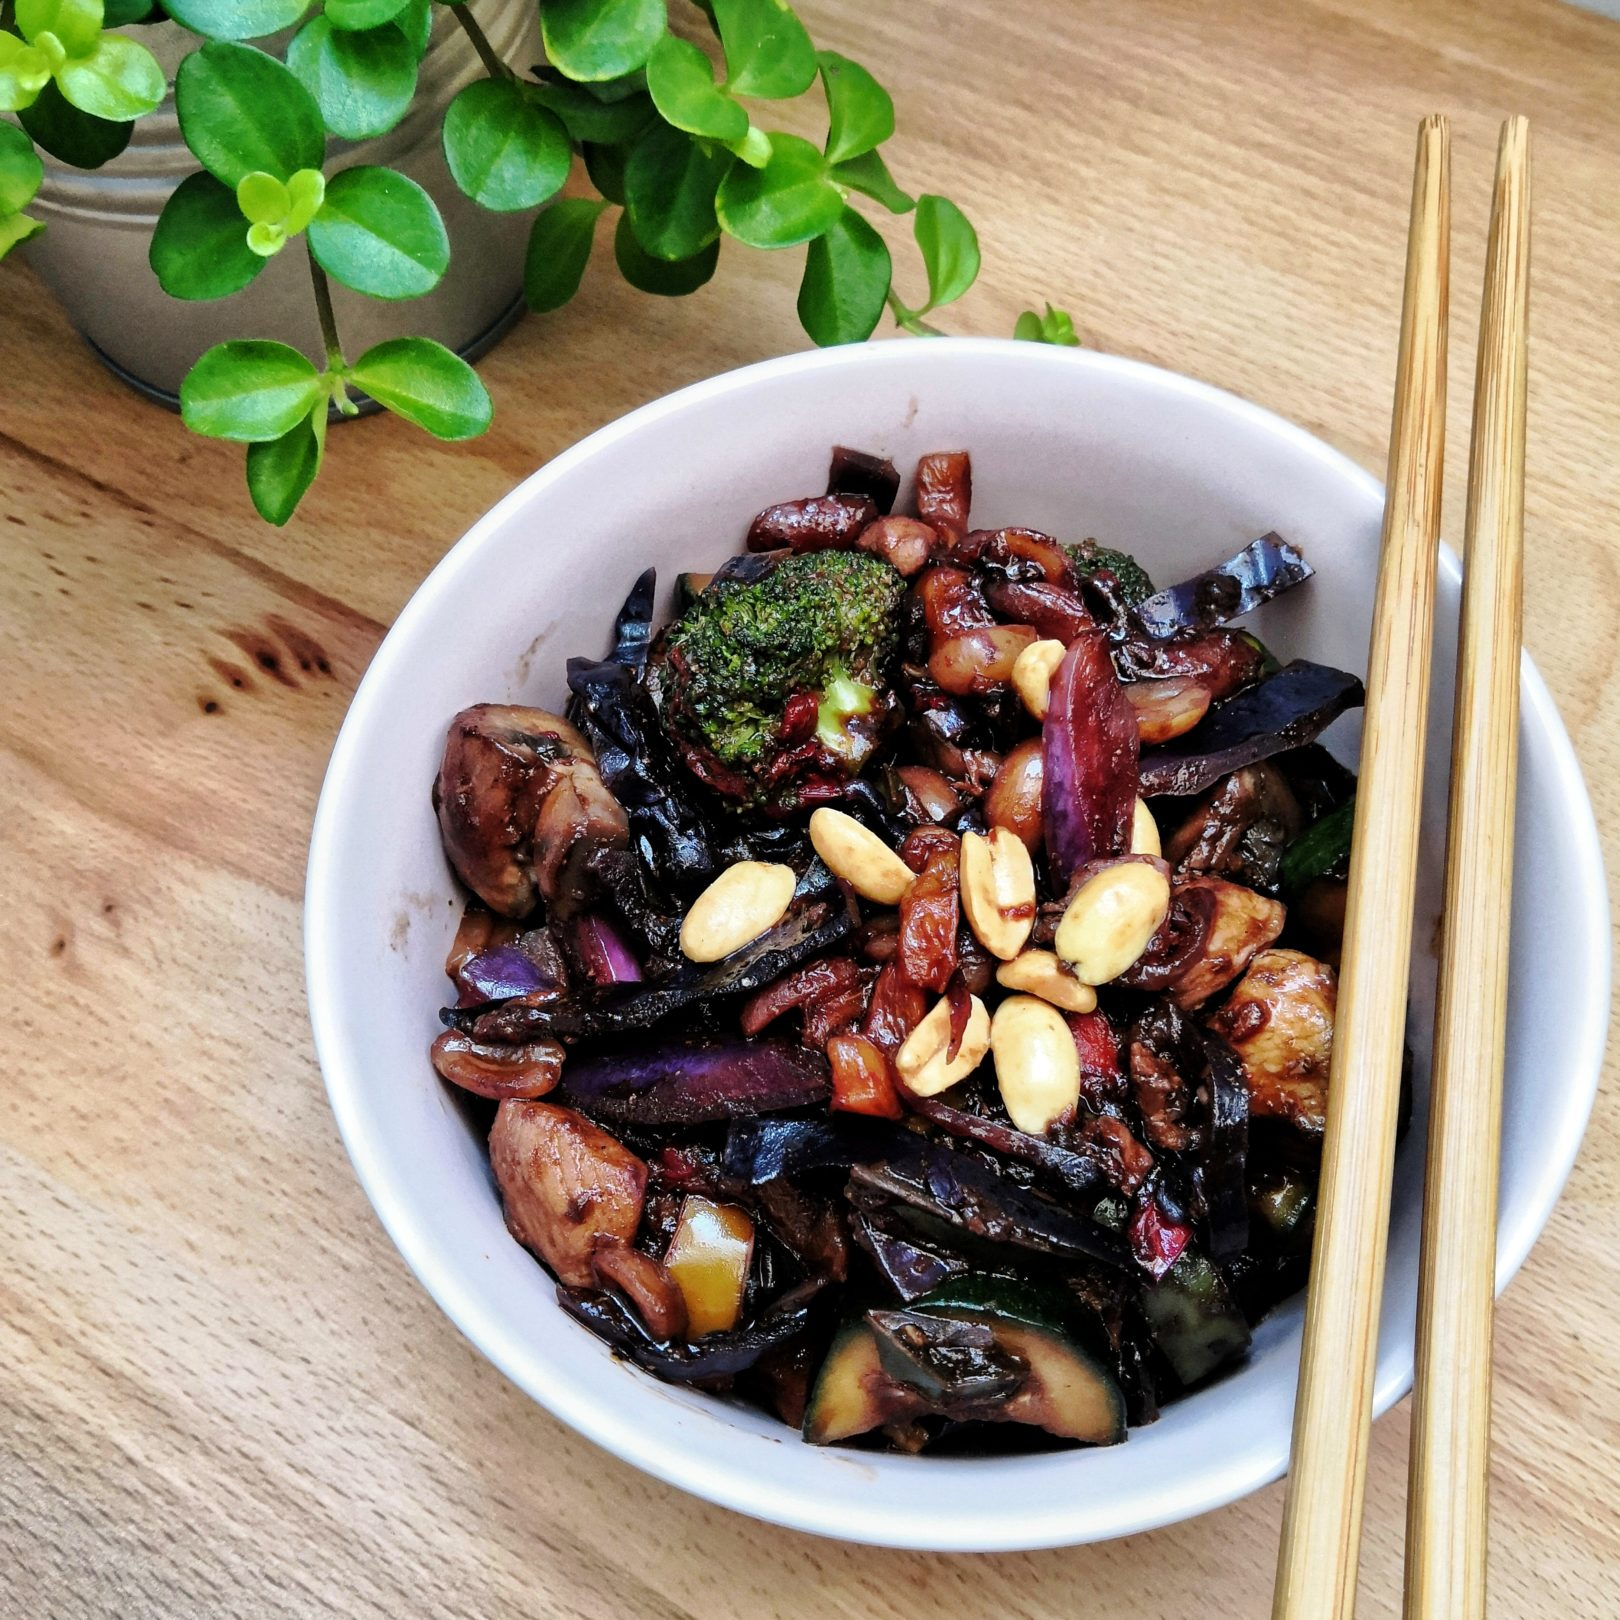 Chicken with Low-Carb Vegetables Stir-Fry